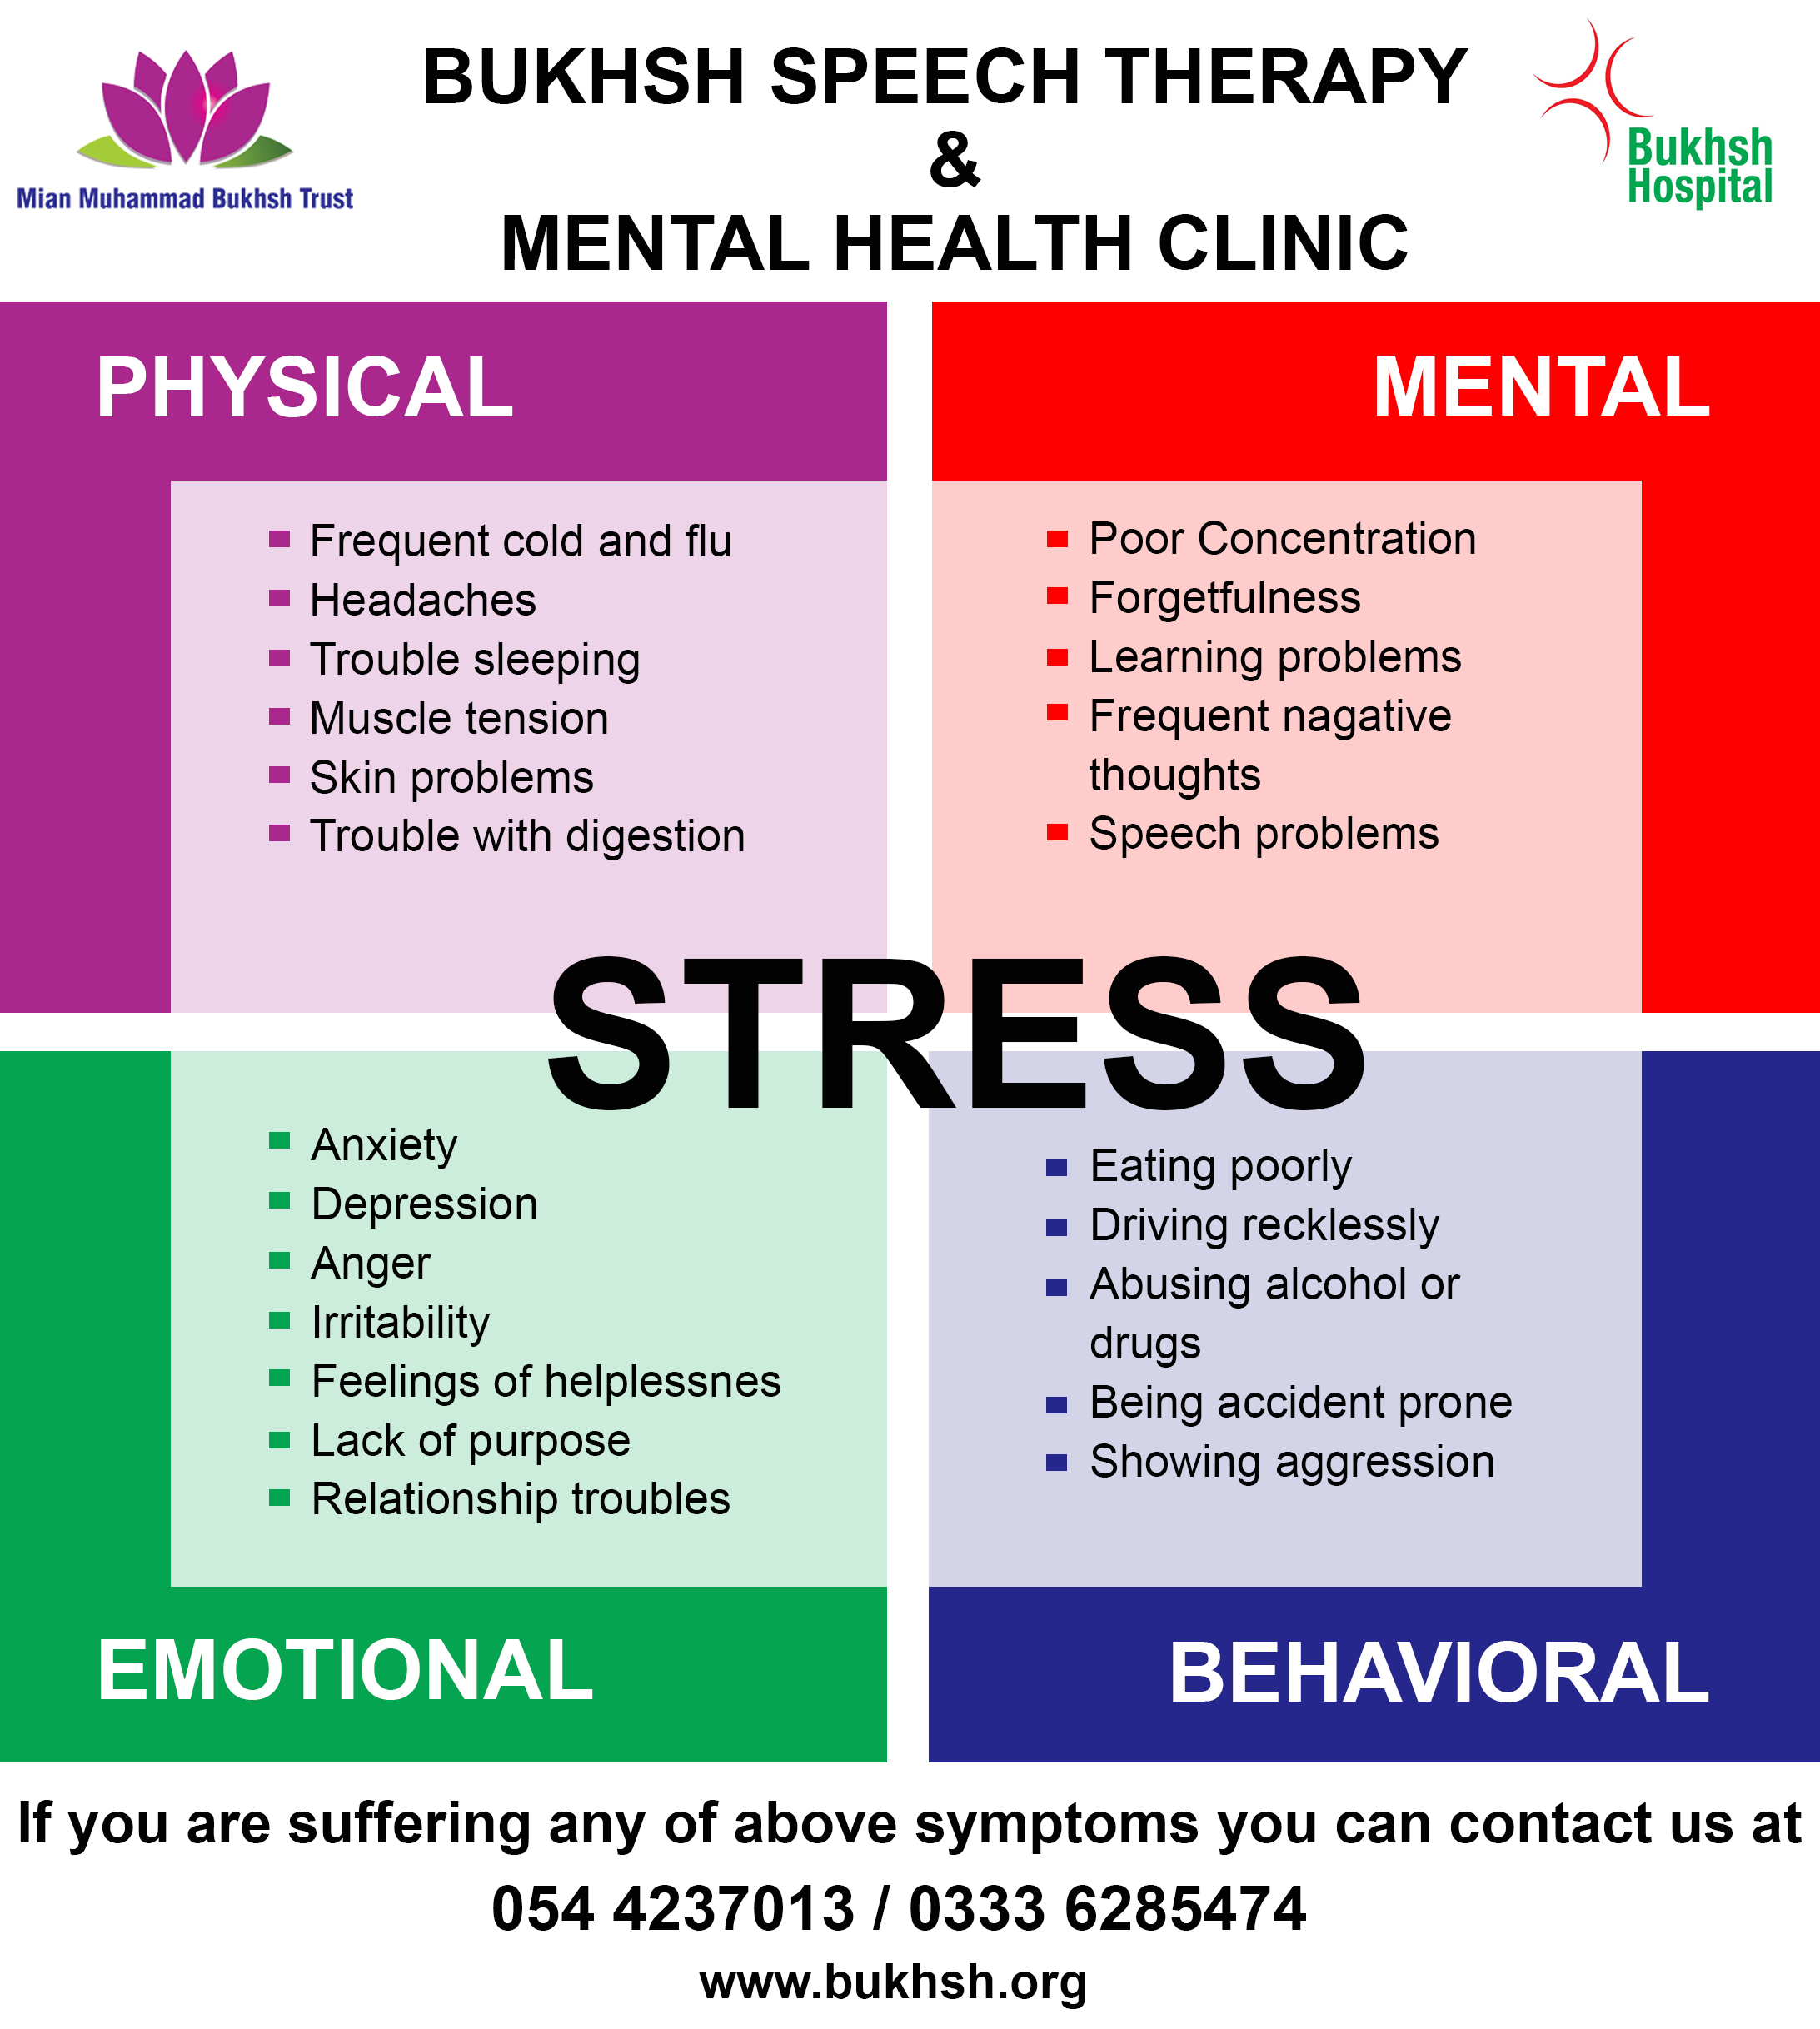 Bukhsh Speech Therapy & Mental Health Clinic